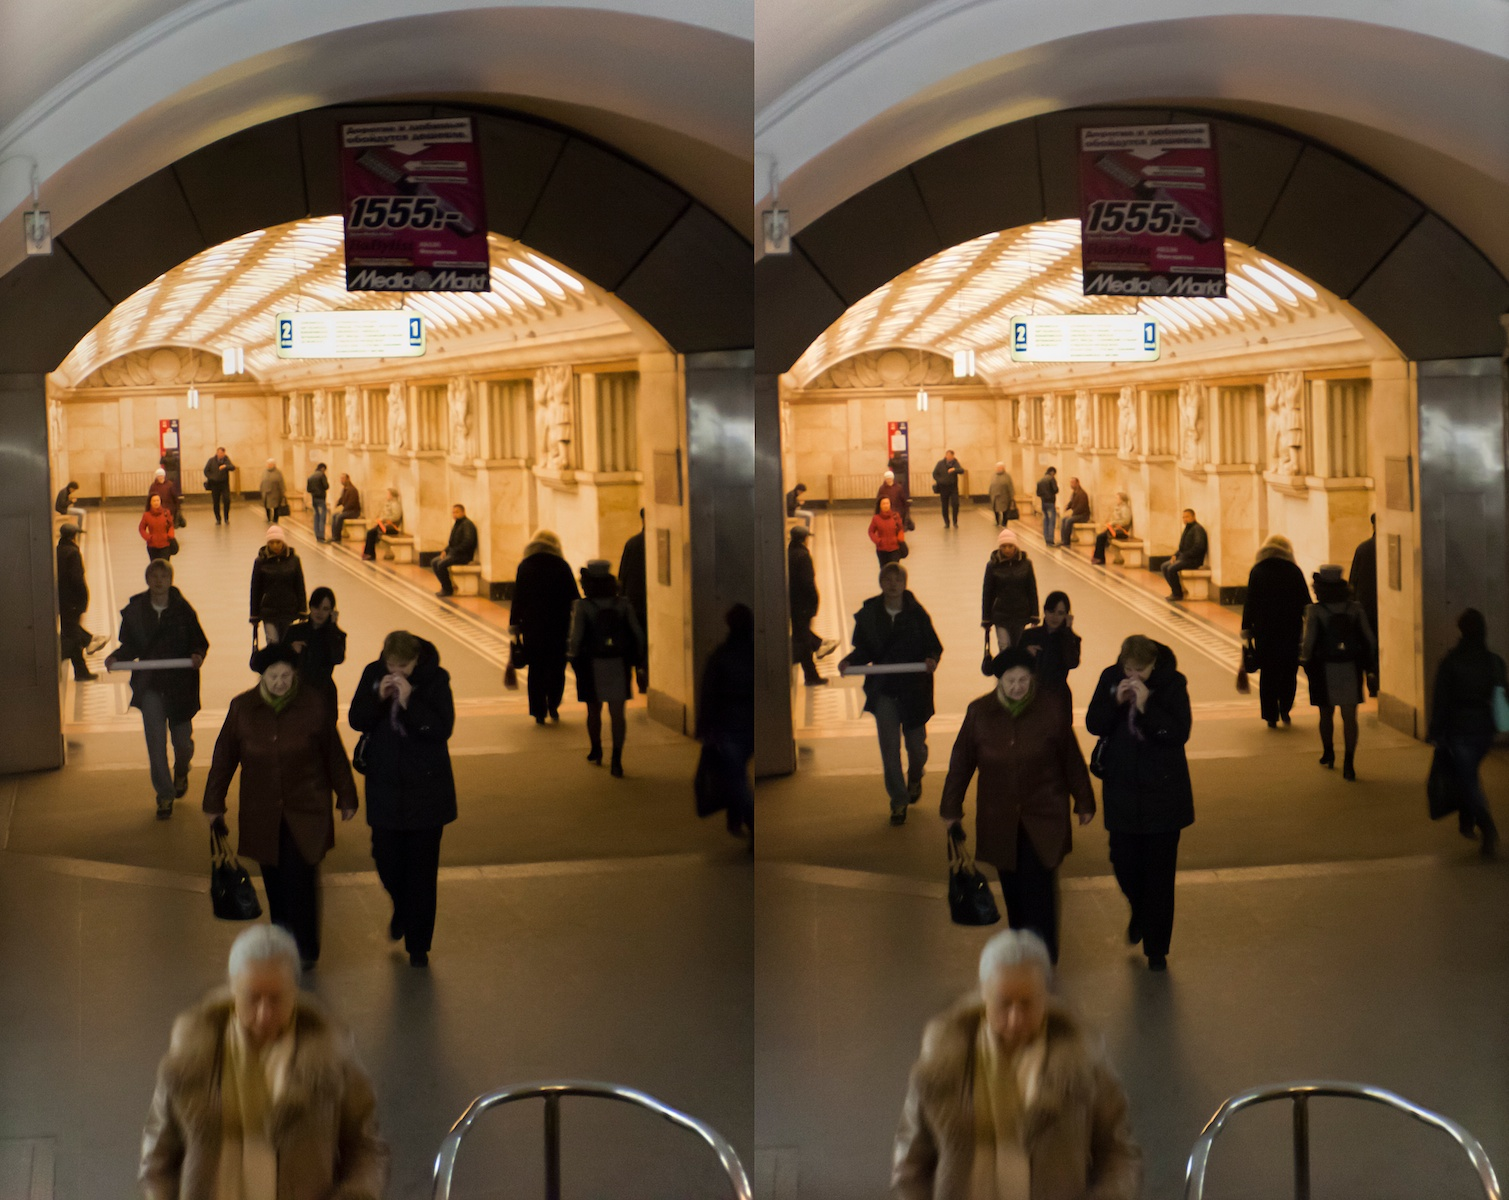 2011 стерео stereo Elektrozavodskaya metro station, Электрозаводская, Shot with Loreo 3D lens In A Cap and Canon 5D mark 2